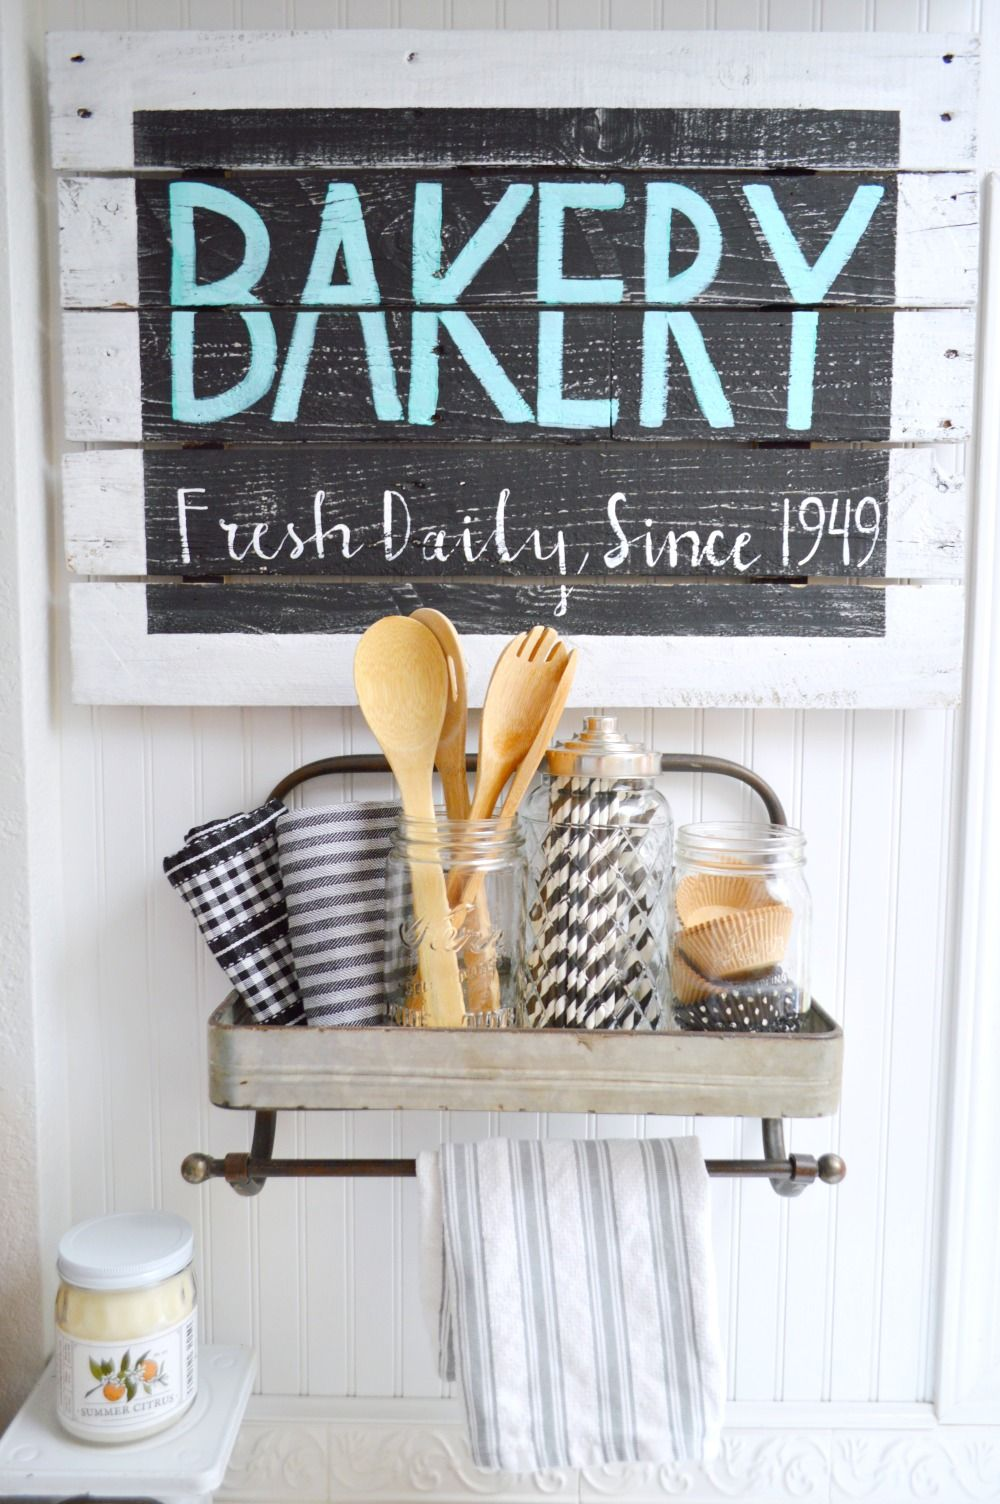 Farmhouse Kitchen Vintage Wood Bakery Sign Kitchen Decor Signs Kitchen Decor Farmhouse Kitchen Decor